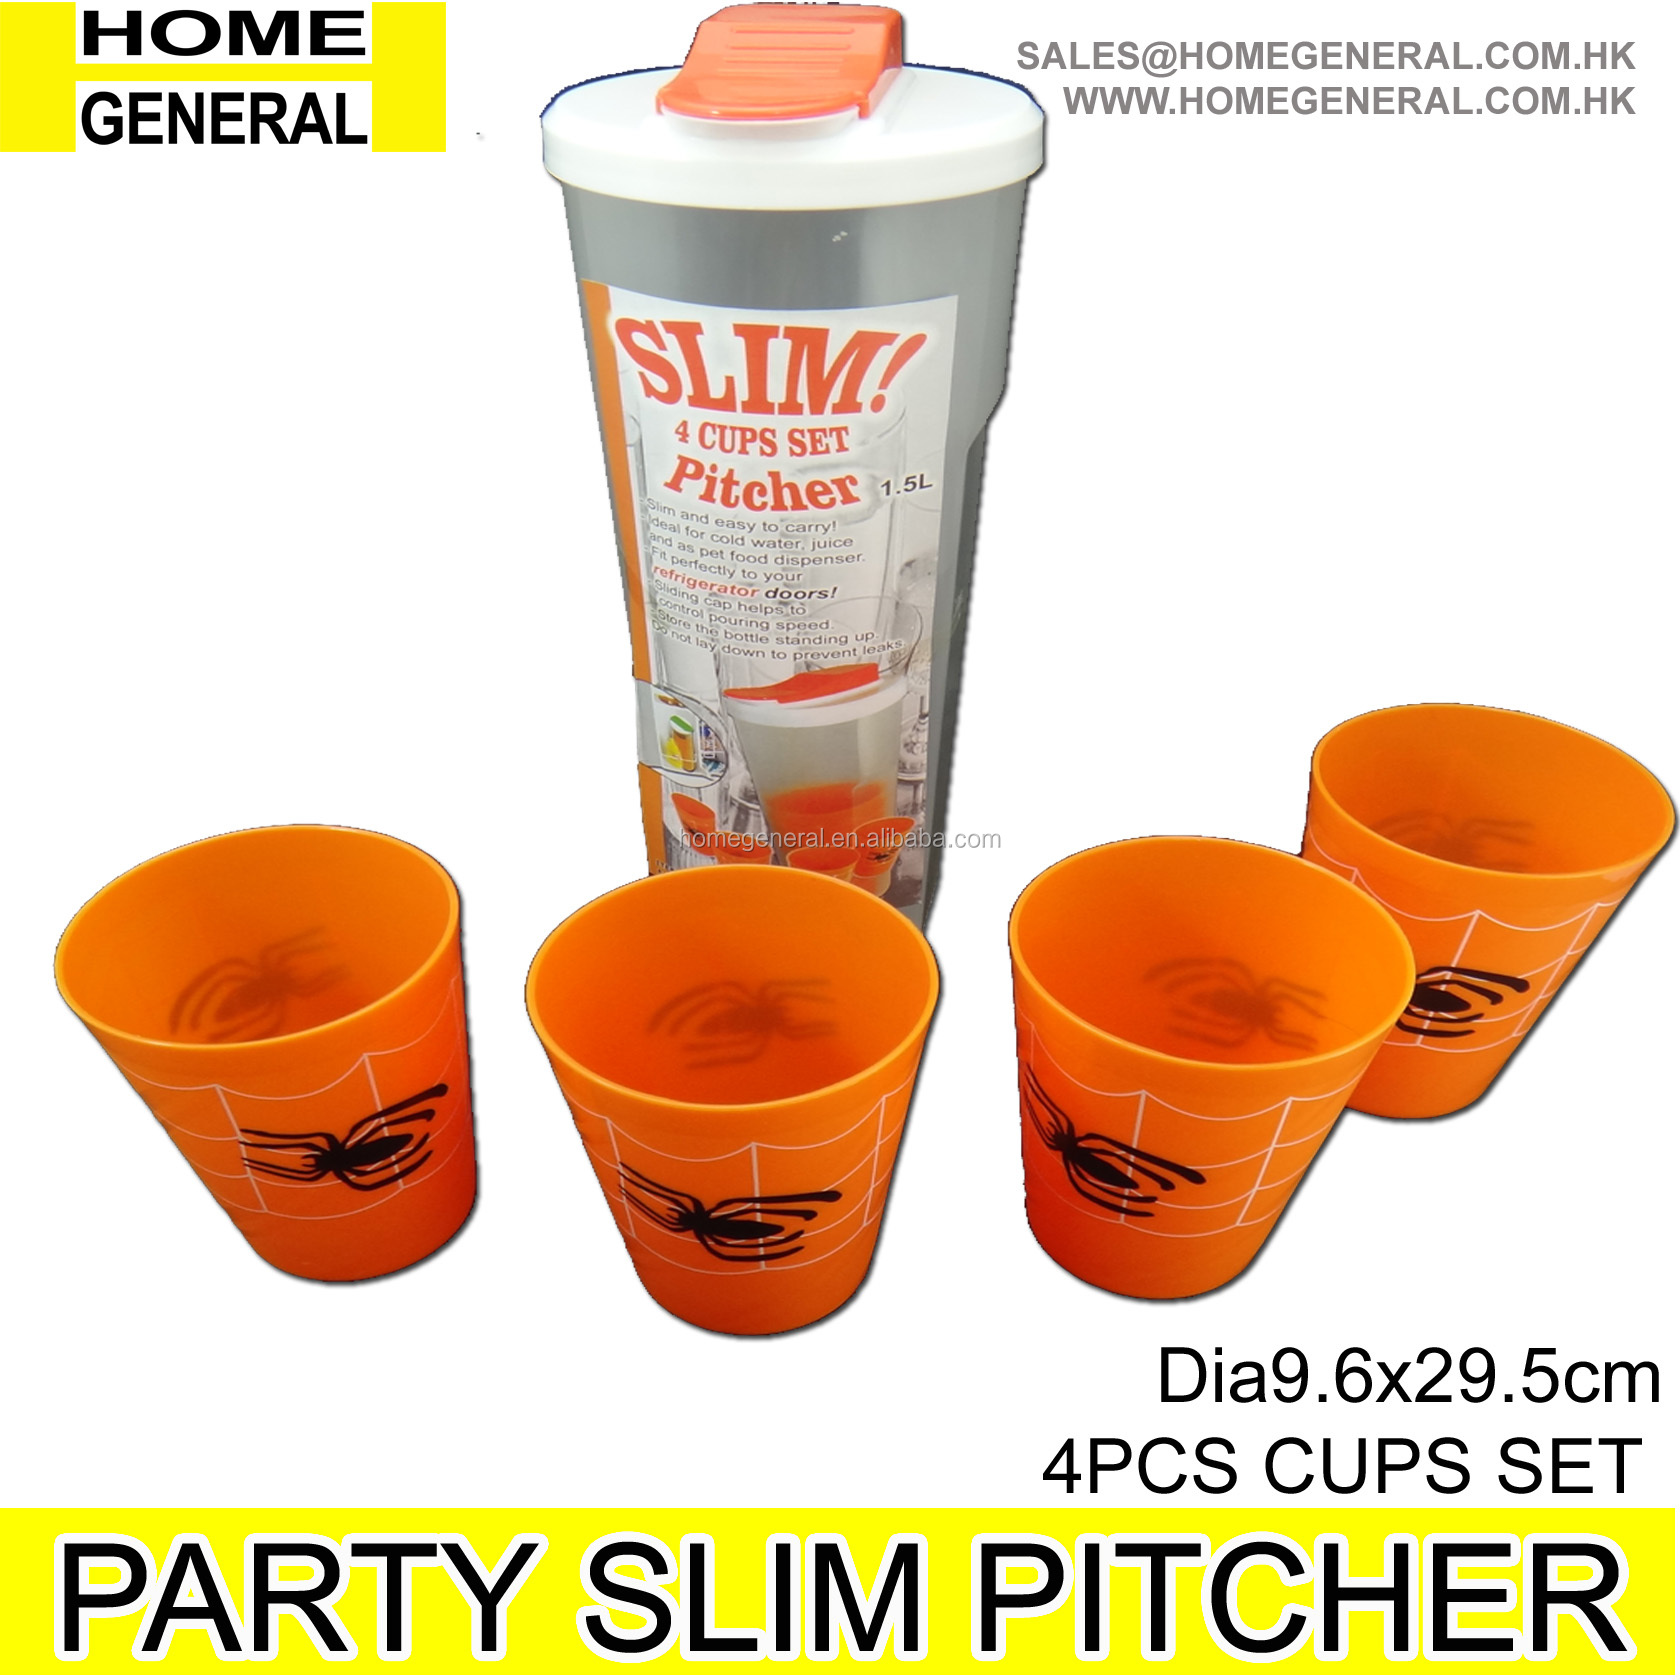 PARTY GENERAL PLASTIC SLIM PITCHER WITH 4 CUPS PITCHER FOR PARTY 1.5L PITCHER WITH SLIDING LID PLASTIC MILK PITCHER